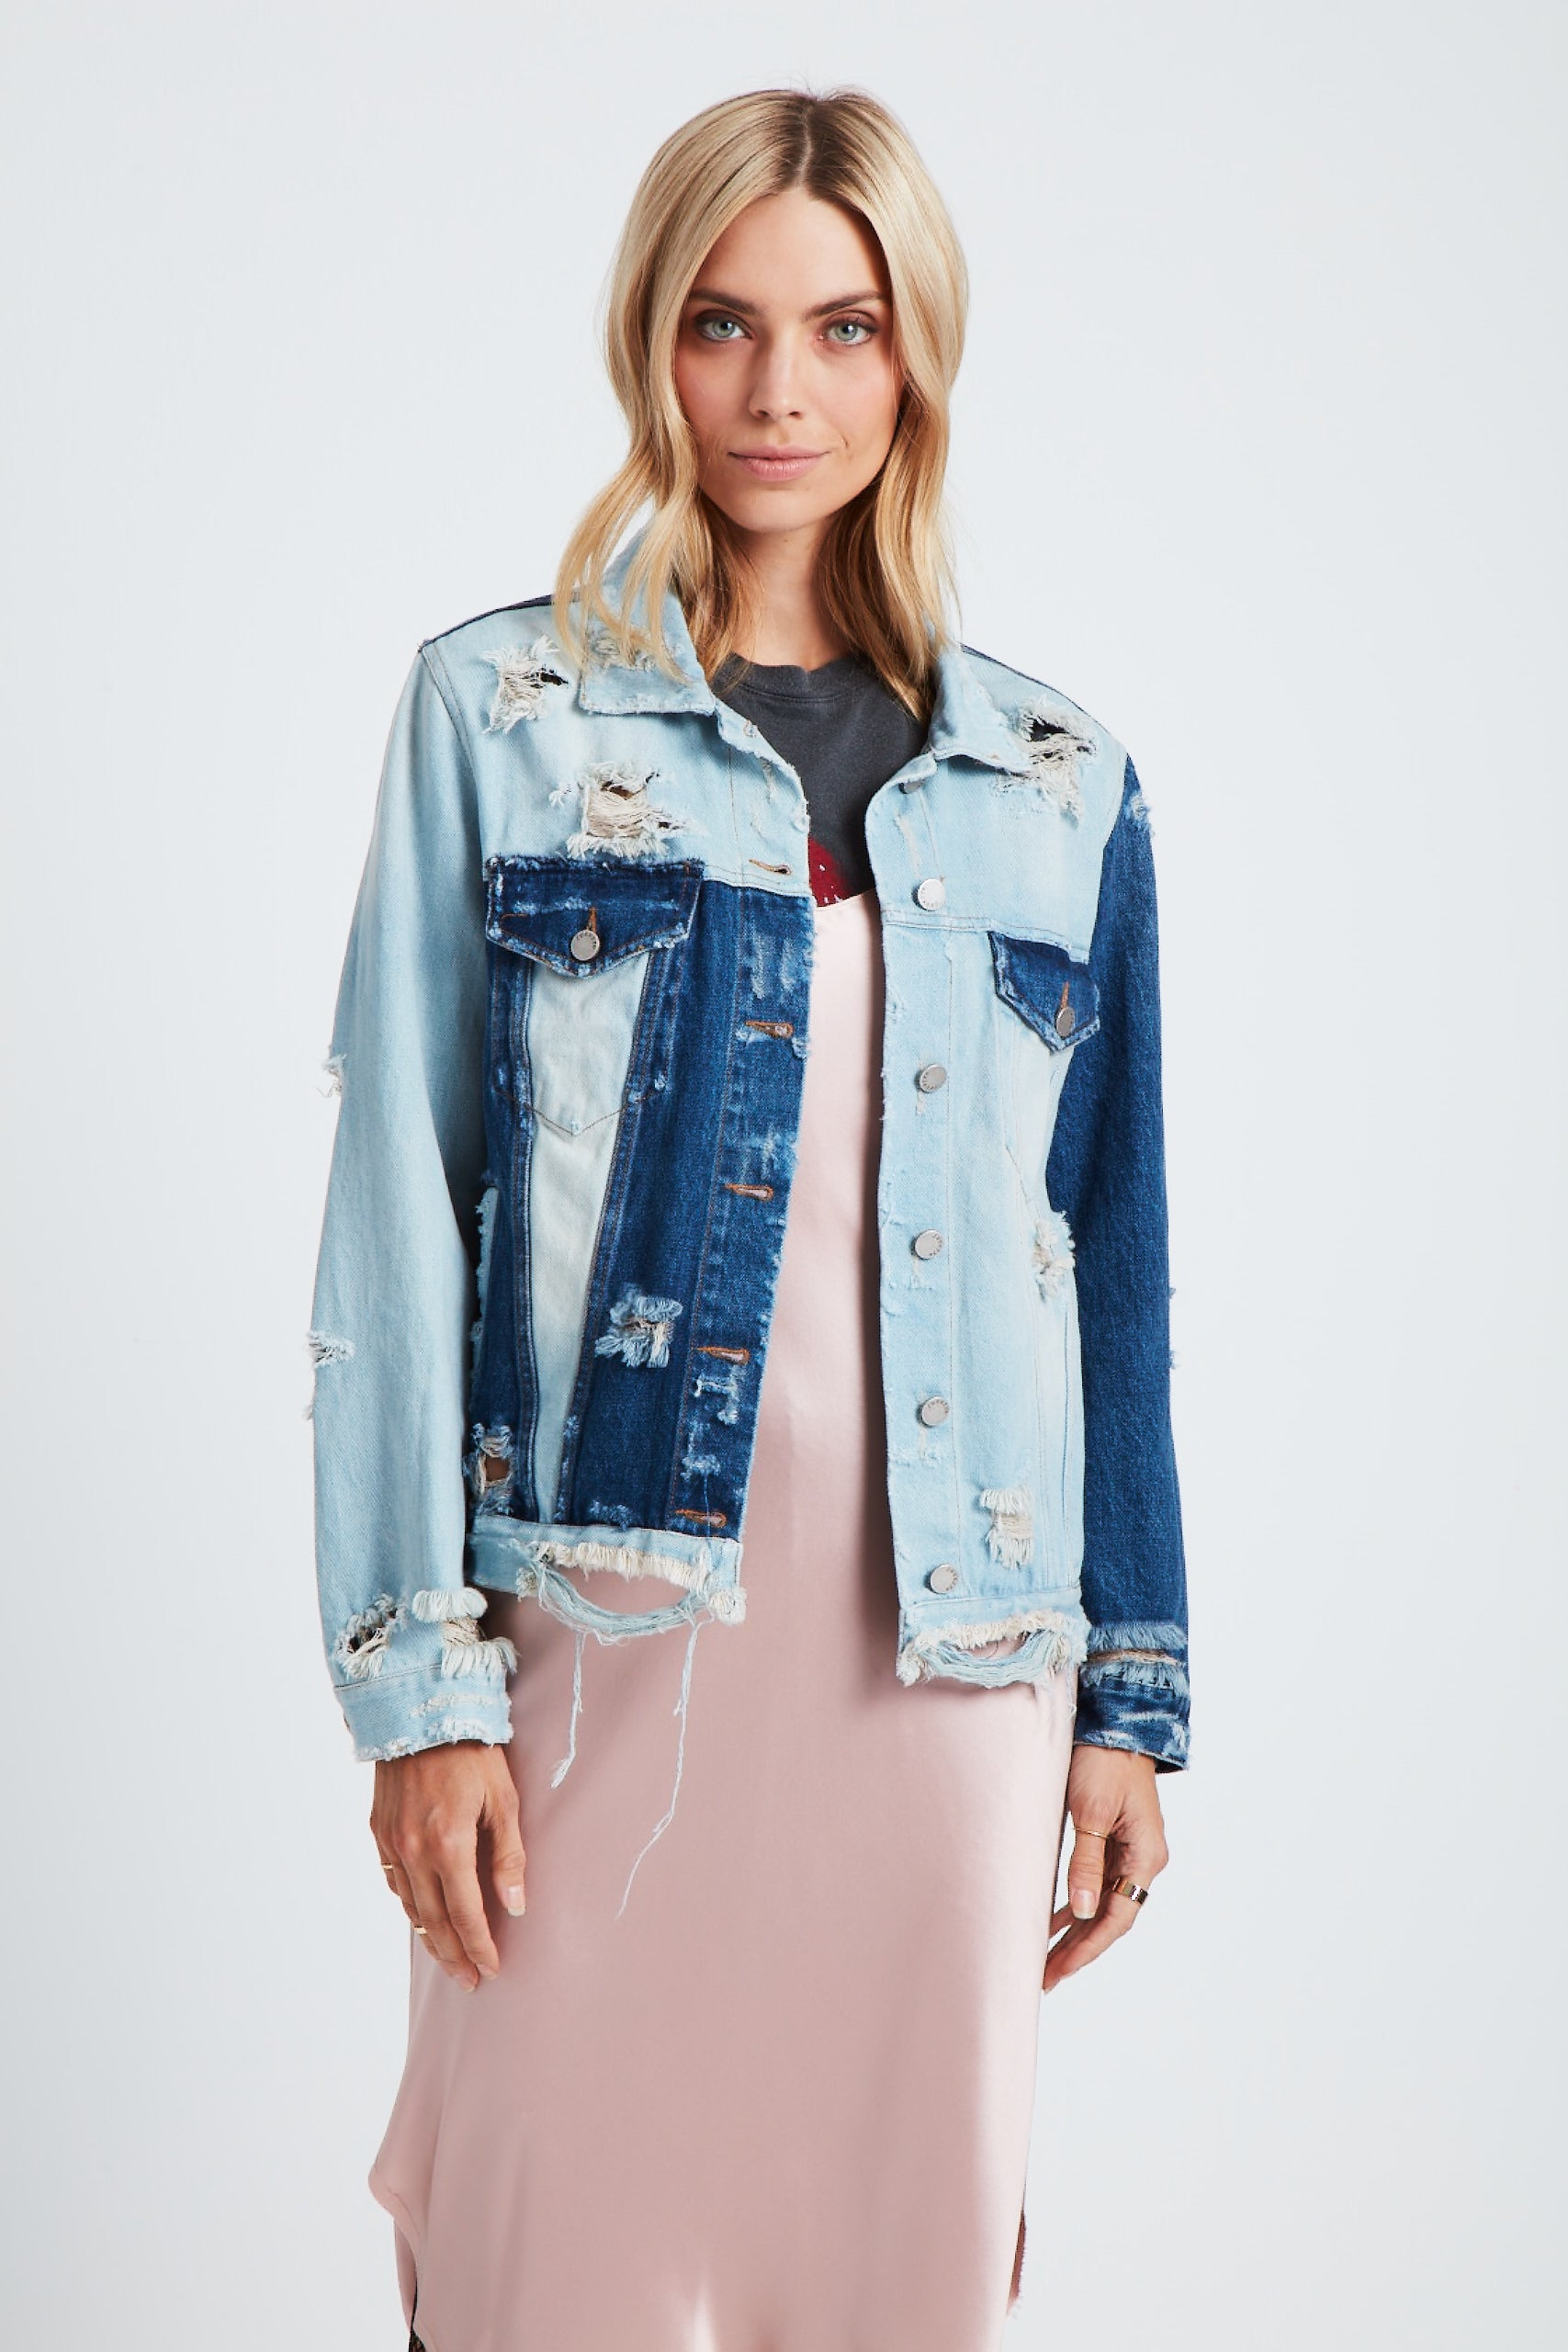 The Afterglow Denim Jacket